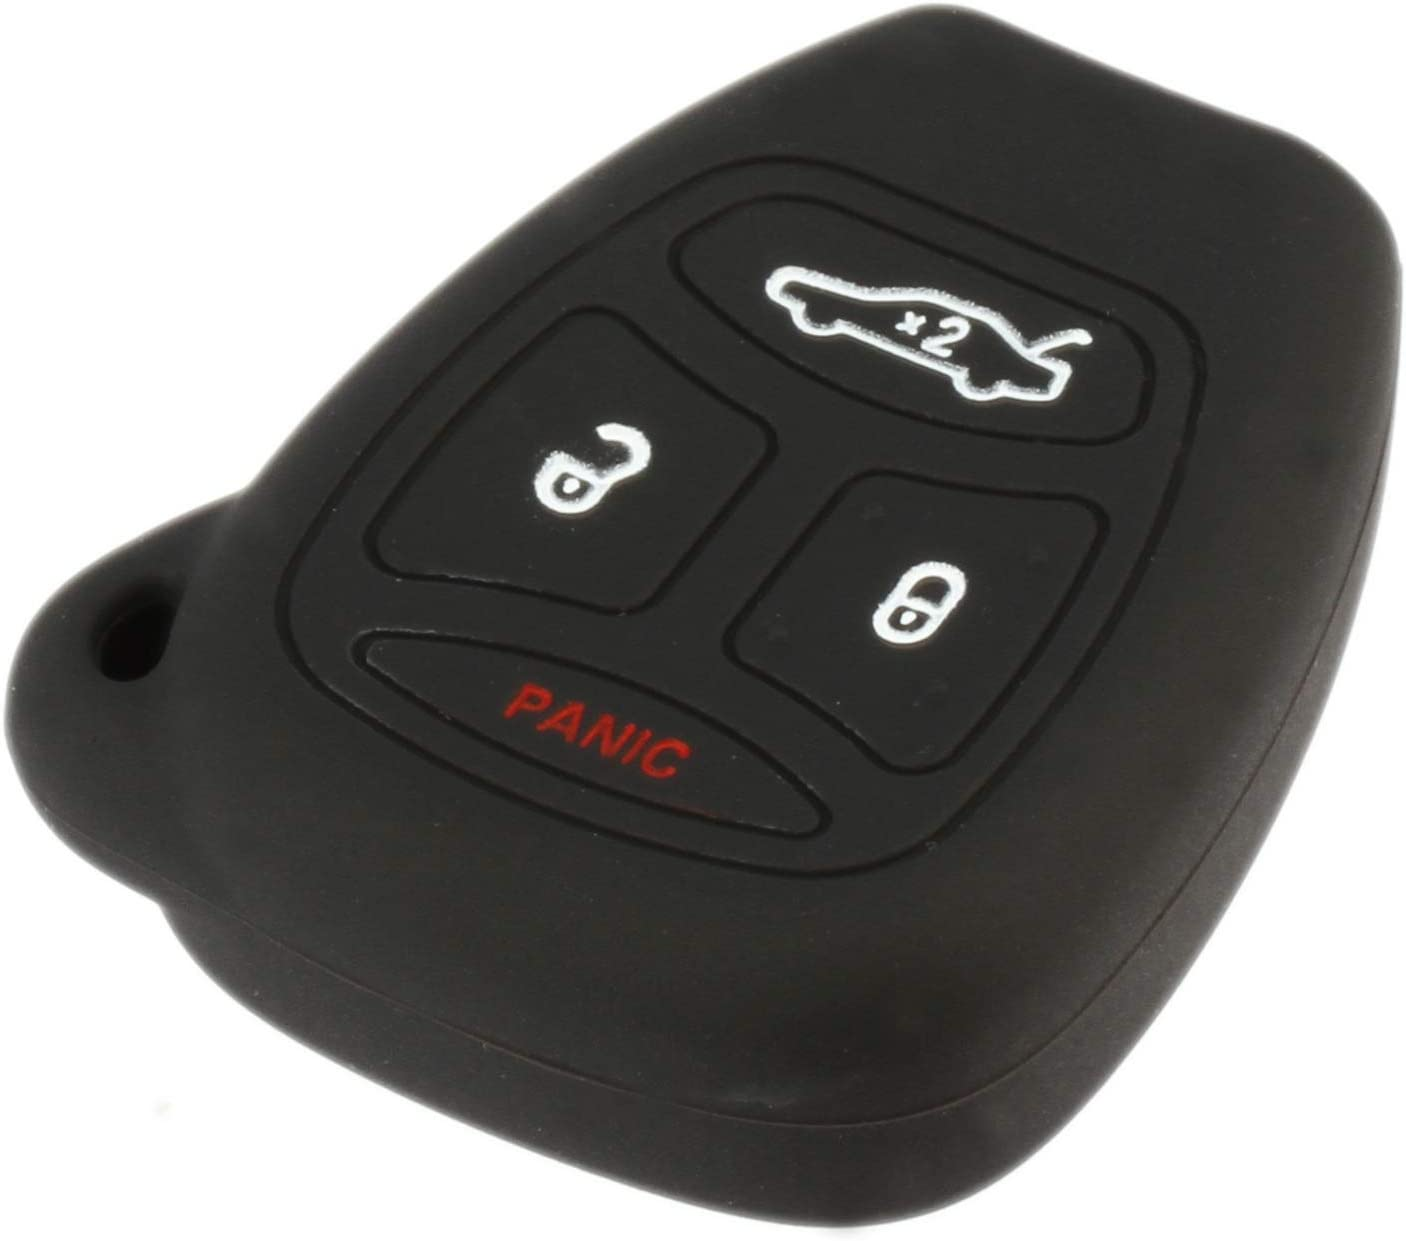 fits 2005-2009 Chrysler Dodge Jeep Key Fob Remote Case Cover Skin Protector